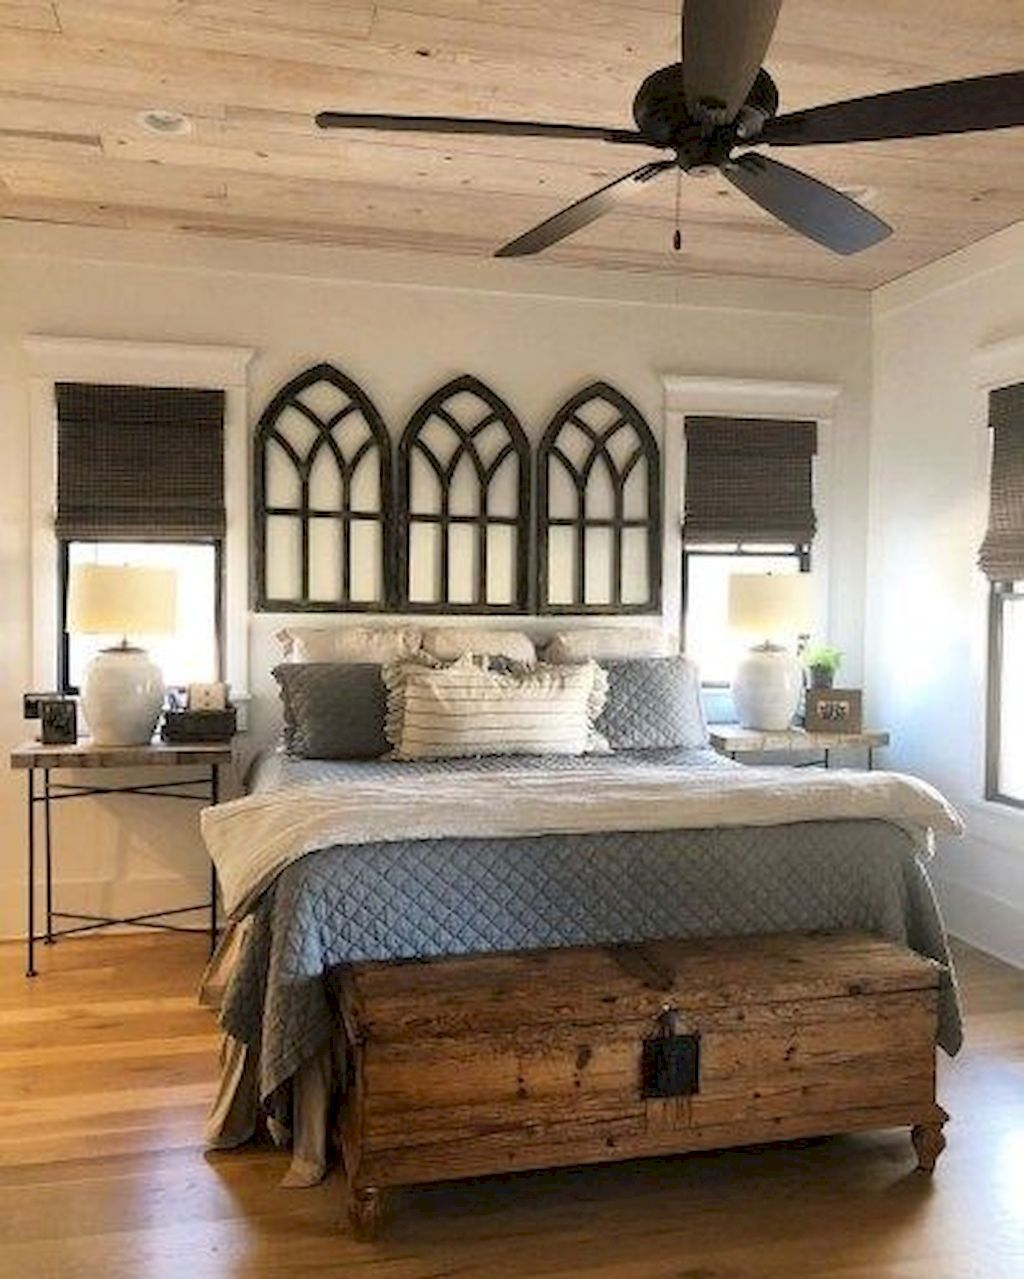 01 Fresh Small Master Bedroom Decor Ideas: Cool 55 AWESOME FARMHOUSE RUSTIC MASTER BEDROOM IDEAS